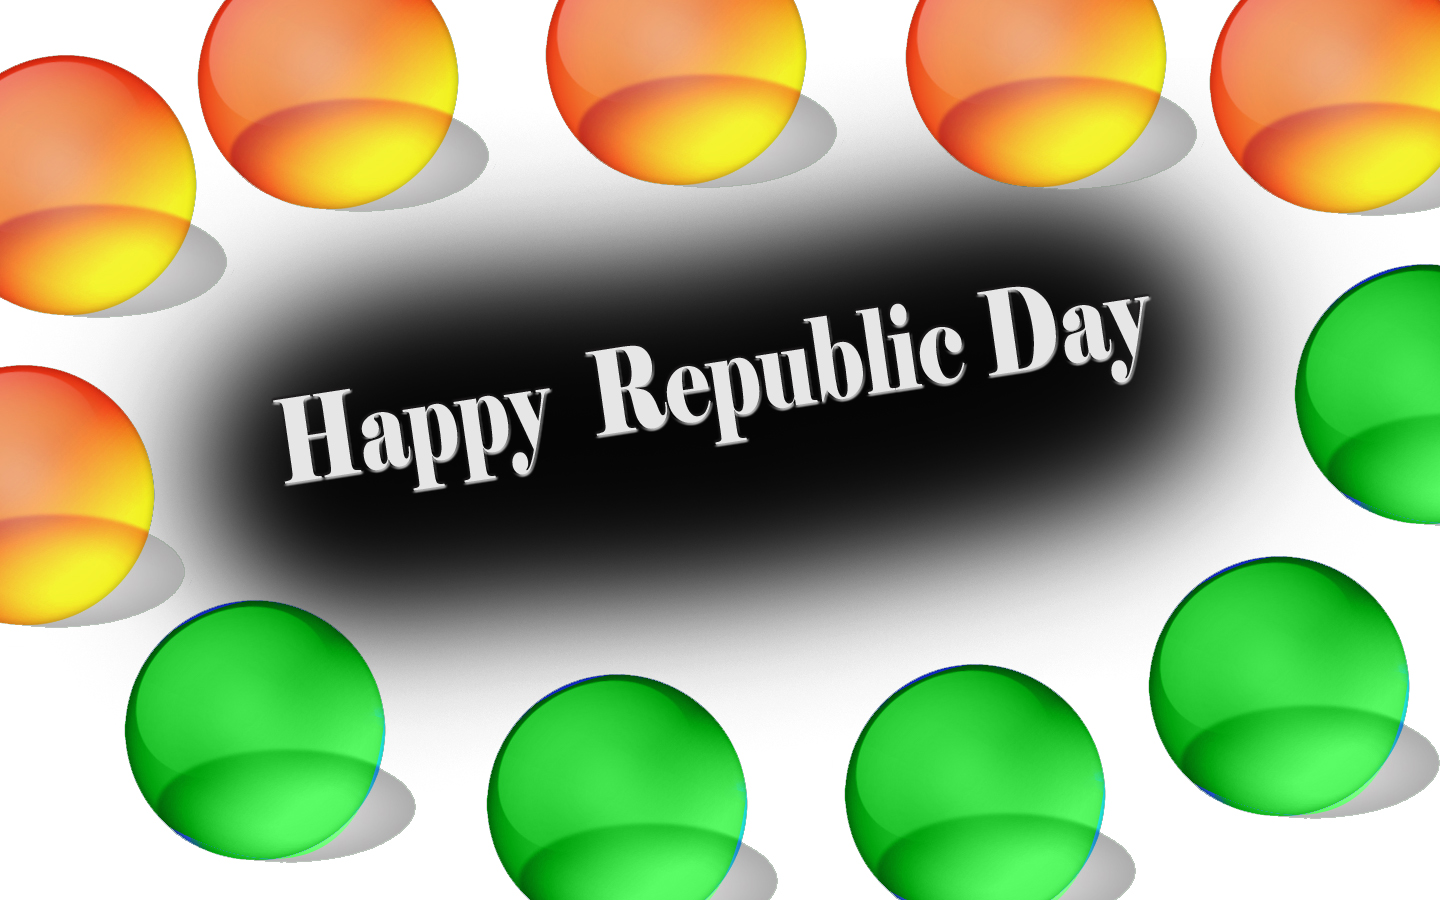 Hd Wallpapers Free Happy Republic Day Indiahappy 26 January